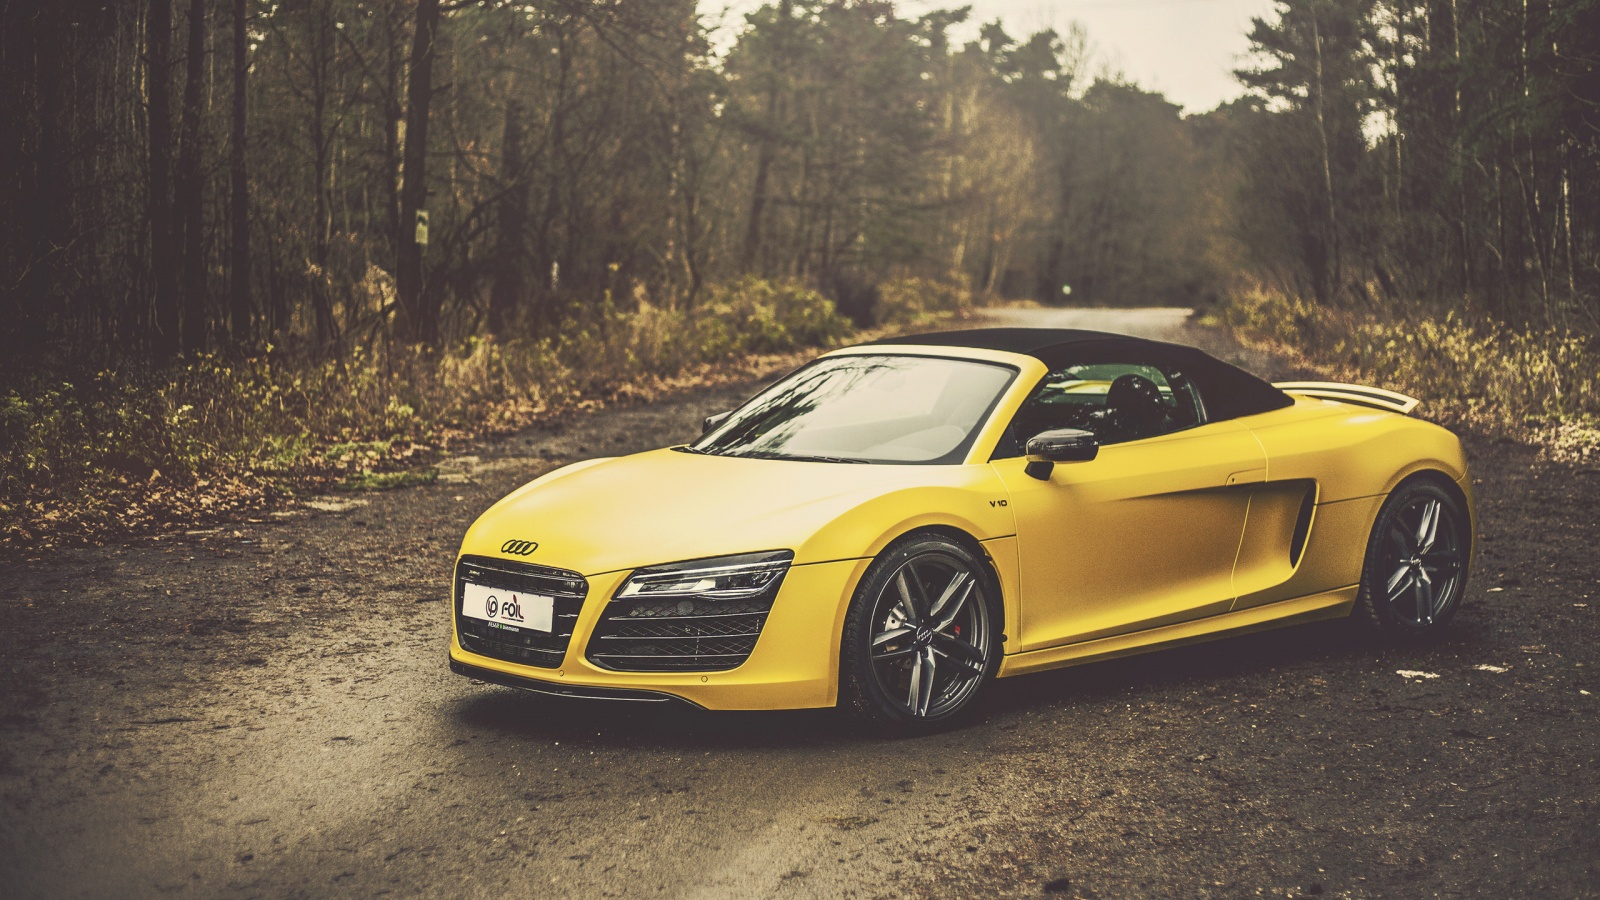 Yellow Audi R8 V10 Spyder Wallpapers 1600x900 605968